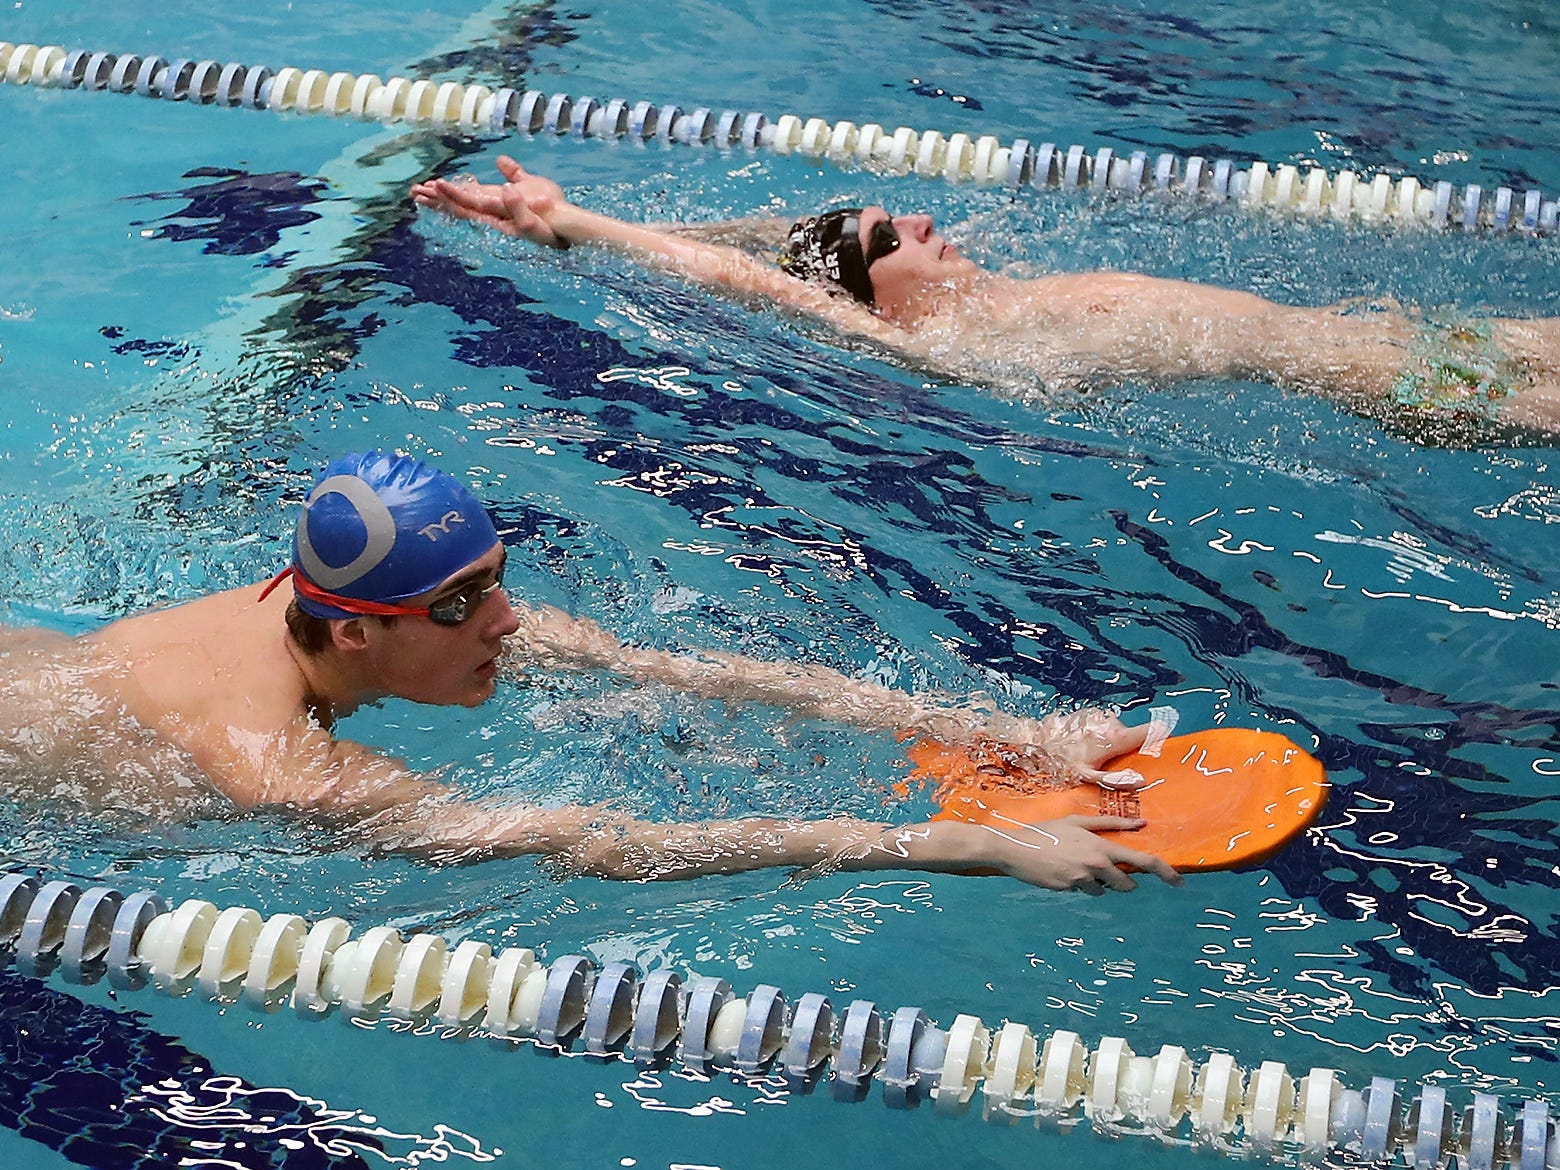 Dietrich Meyer (front) and brother Rainer warmup in the same lane during practice at the Olympic High Pool on Wednesday, January 30, 2019.